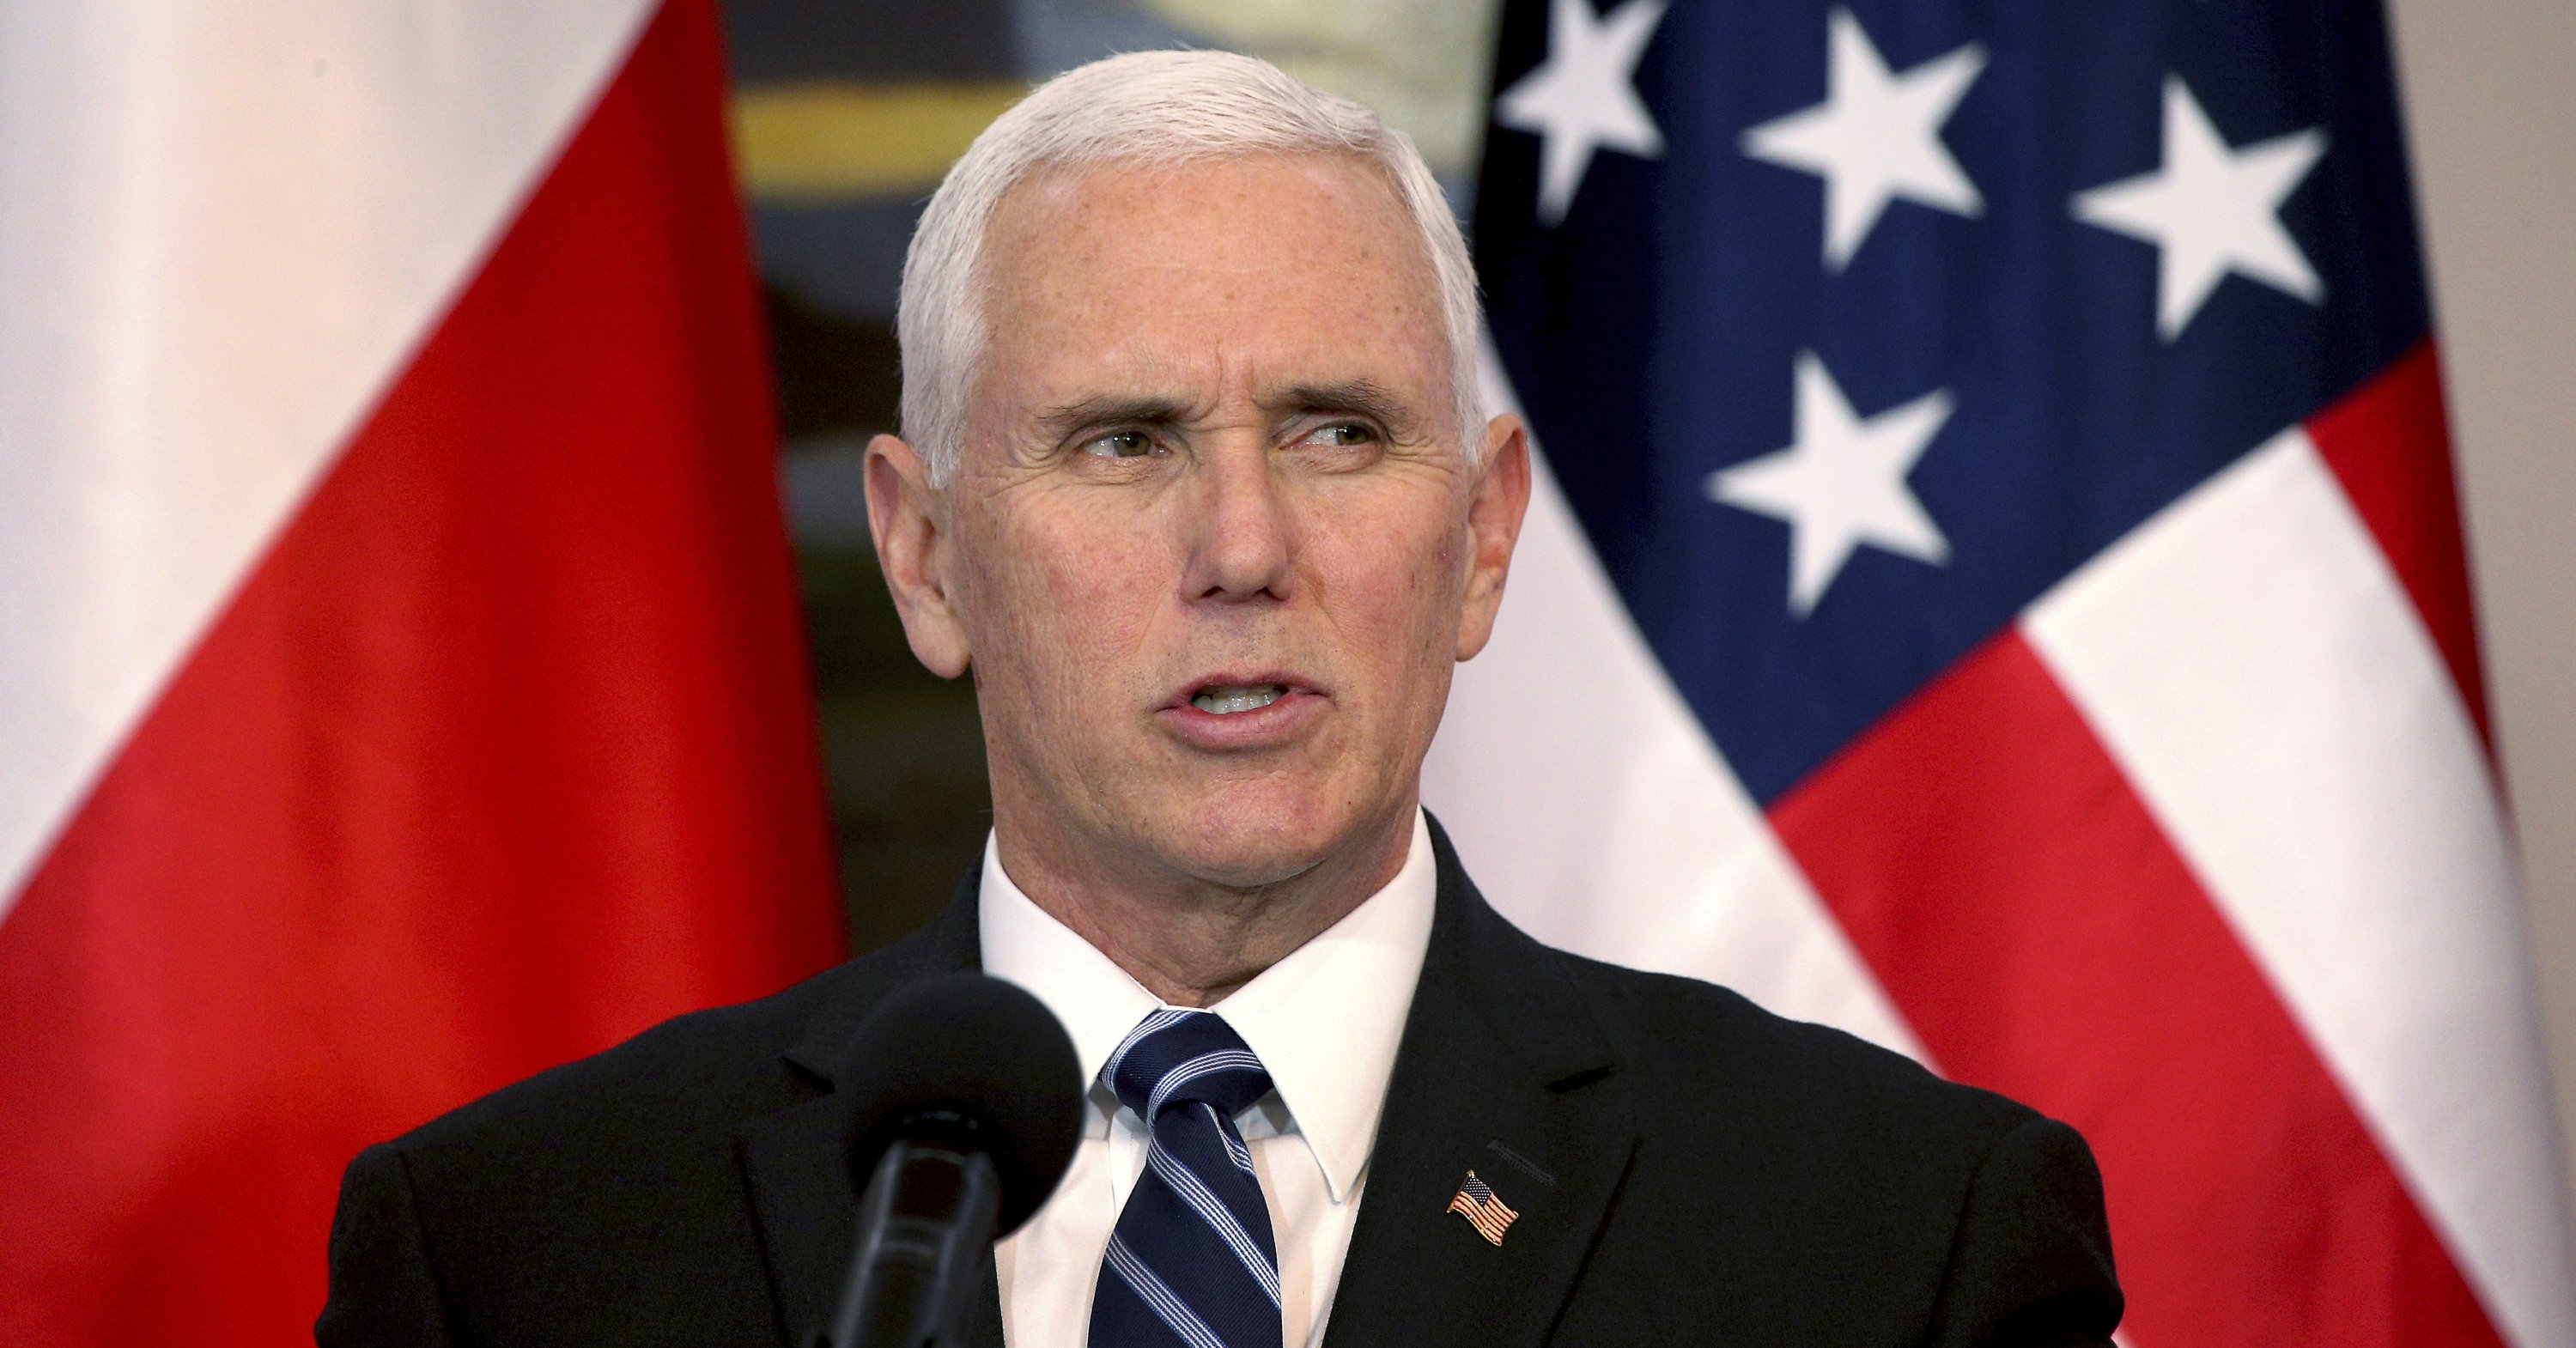 Pence accuses Russia of trying to divide NATO